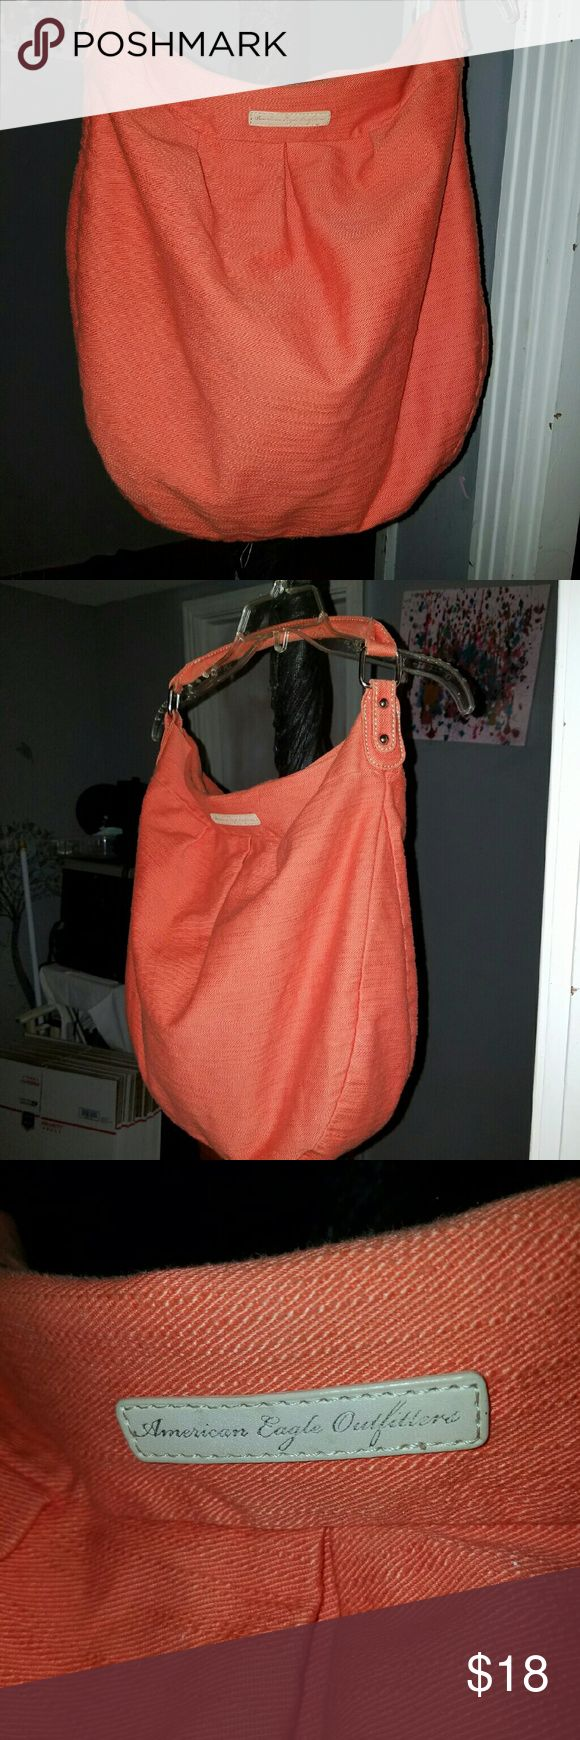 American Eagle tote New without tags American Eagle Outfitters soft cotton tote American Eagle Outfitters Bags